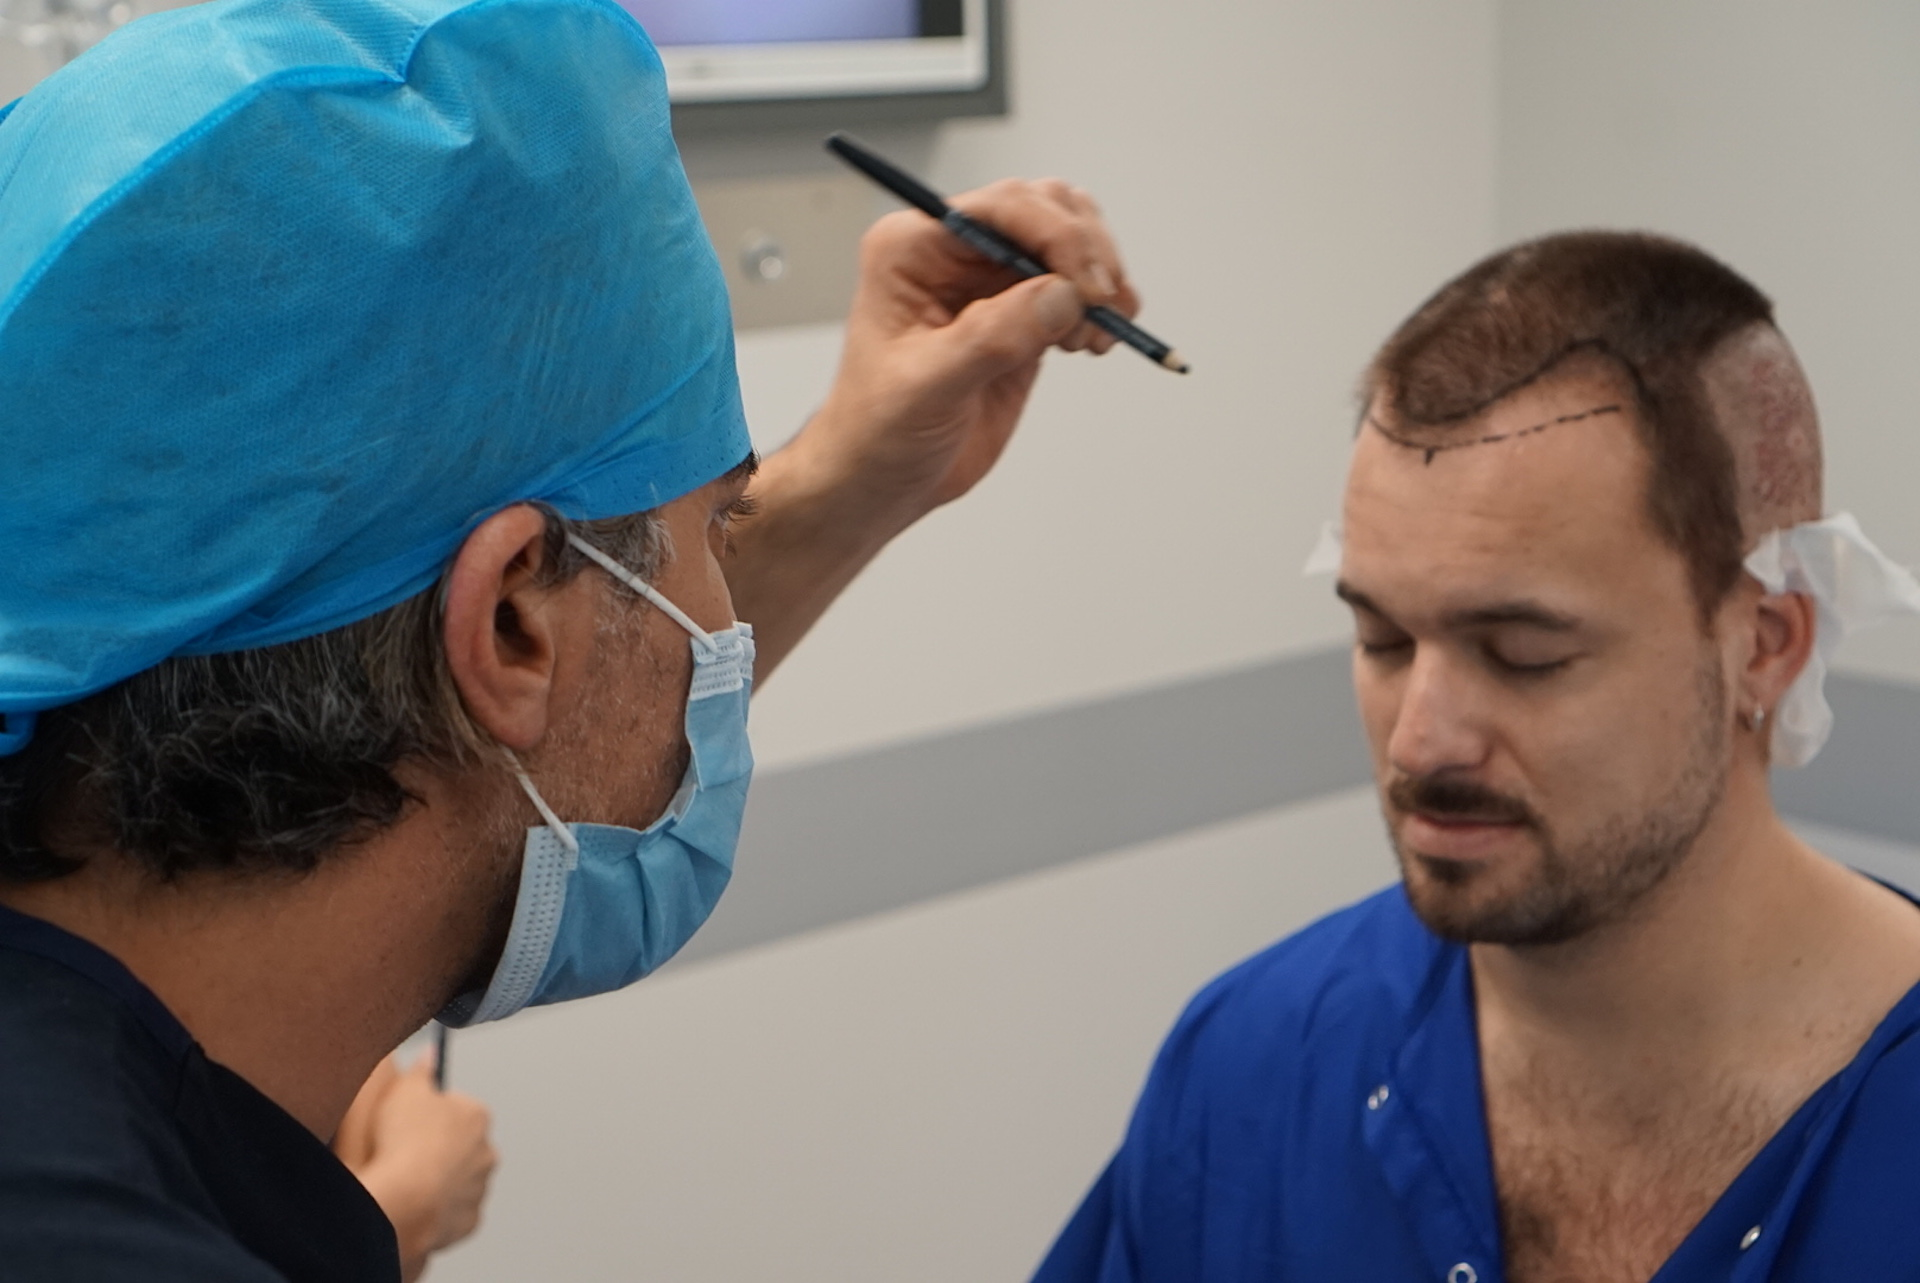 hair transplant surgery Adam Hurly